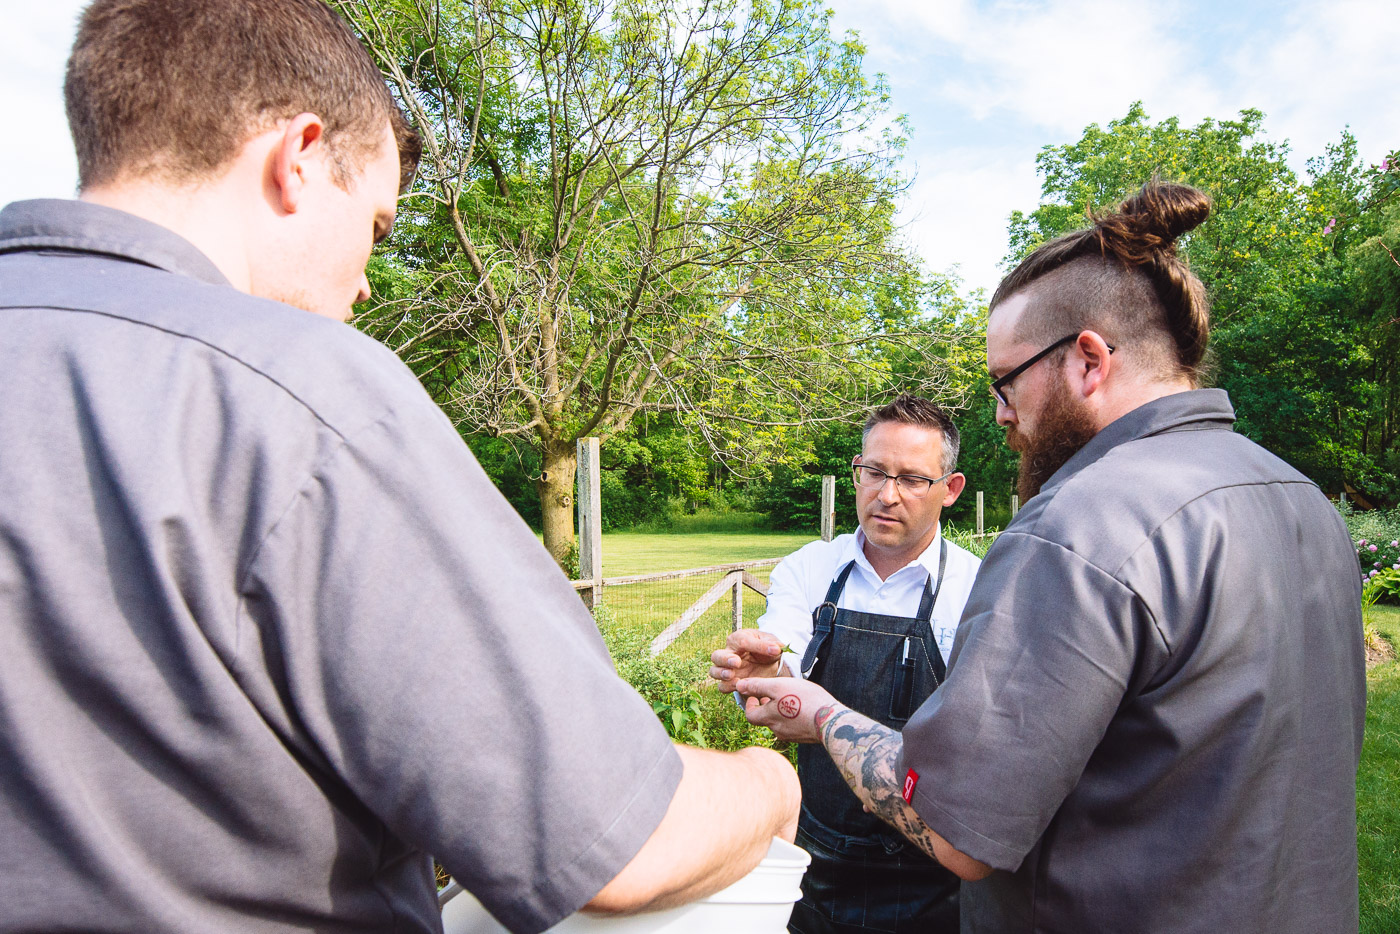 Chef Bangerter and Chef McDonald picking herbs in the Langdon Hall garden for the night's menu.